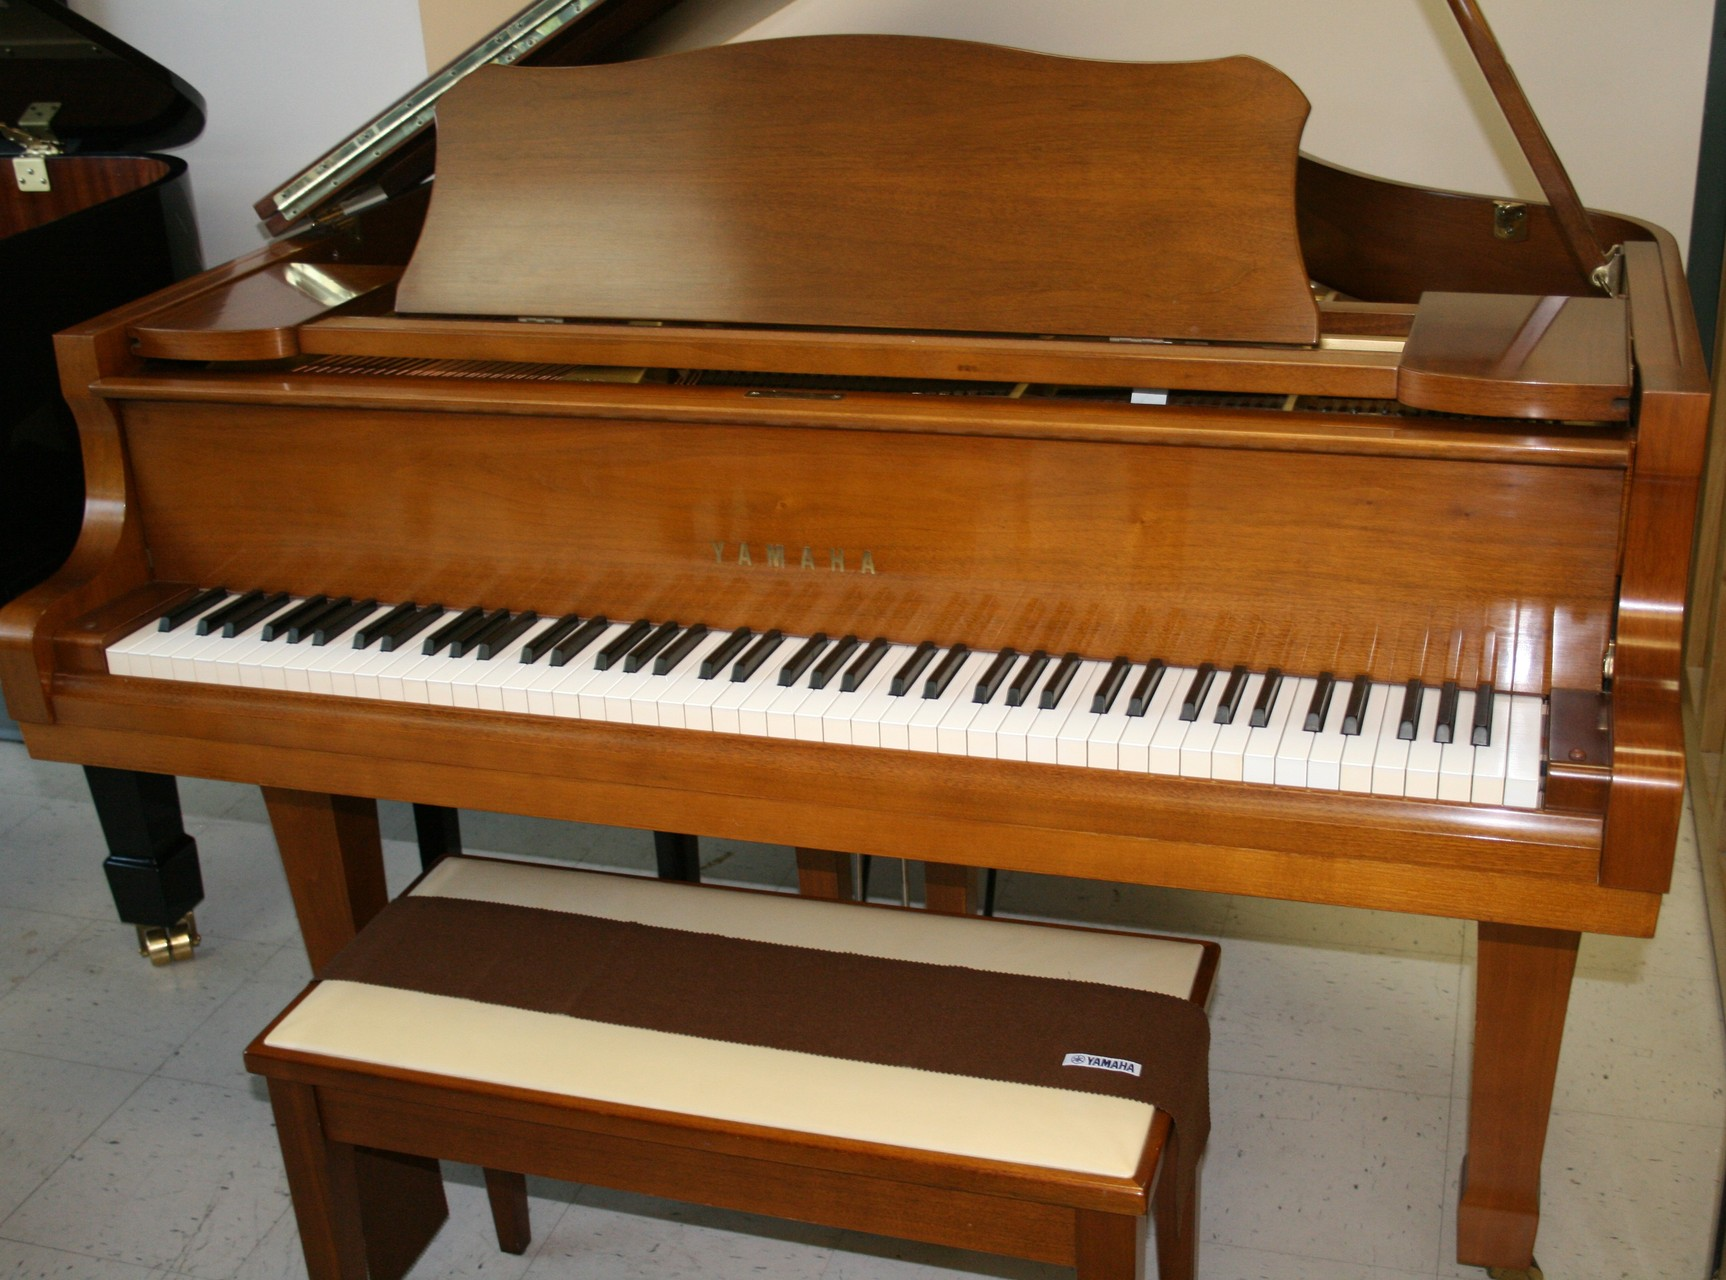 allison piano yamaha c2 g2 1976